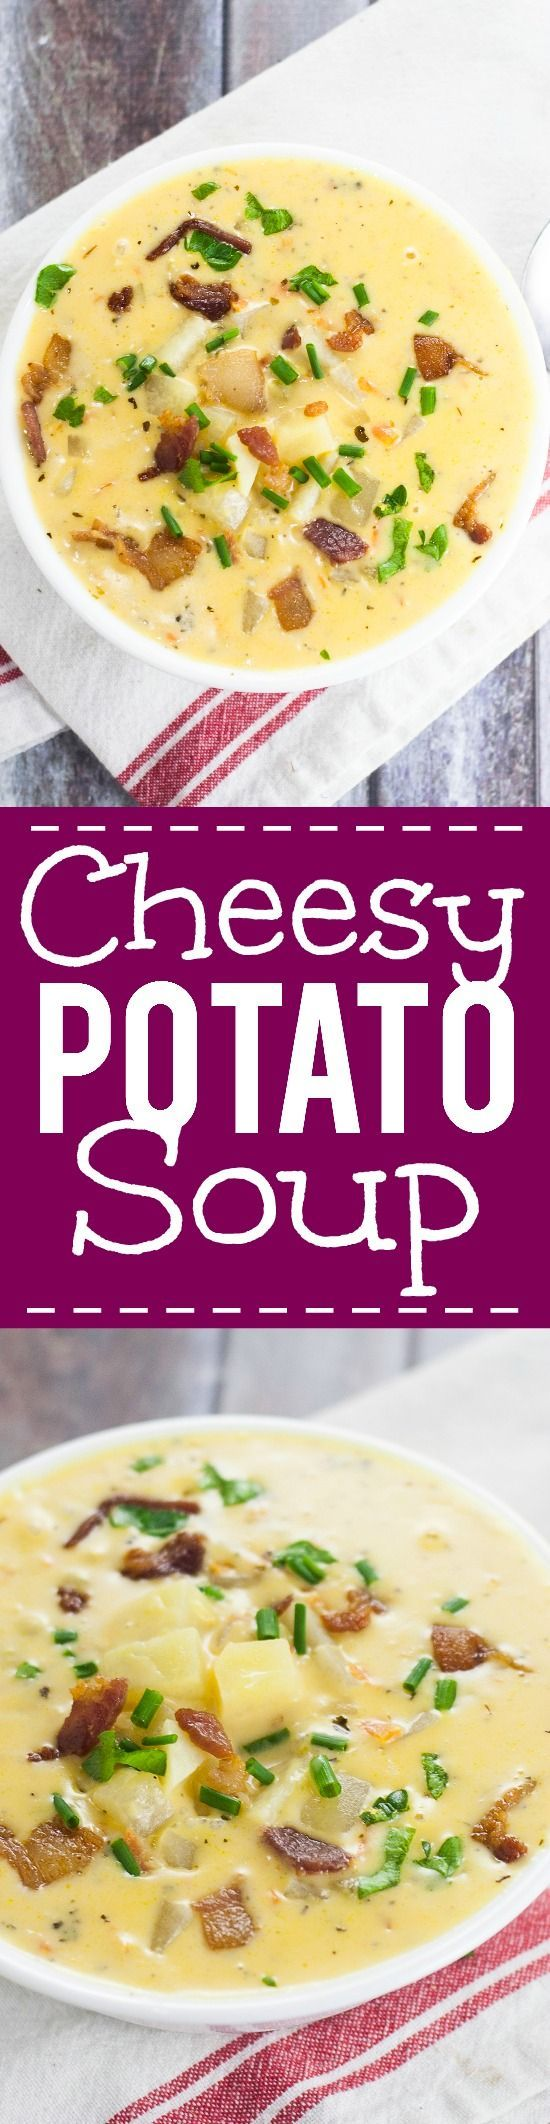 Cheesy Potato Soup Recipe - Warm and creamy Cheesy Potato Soup recipe is a…